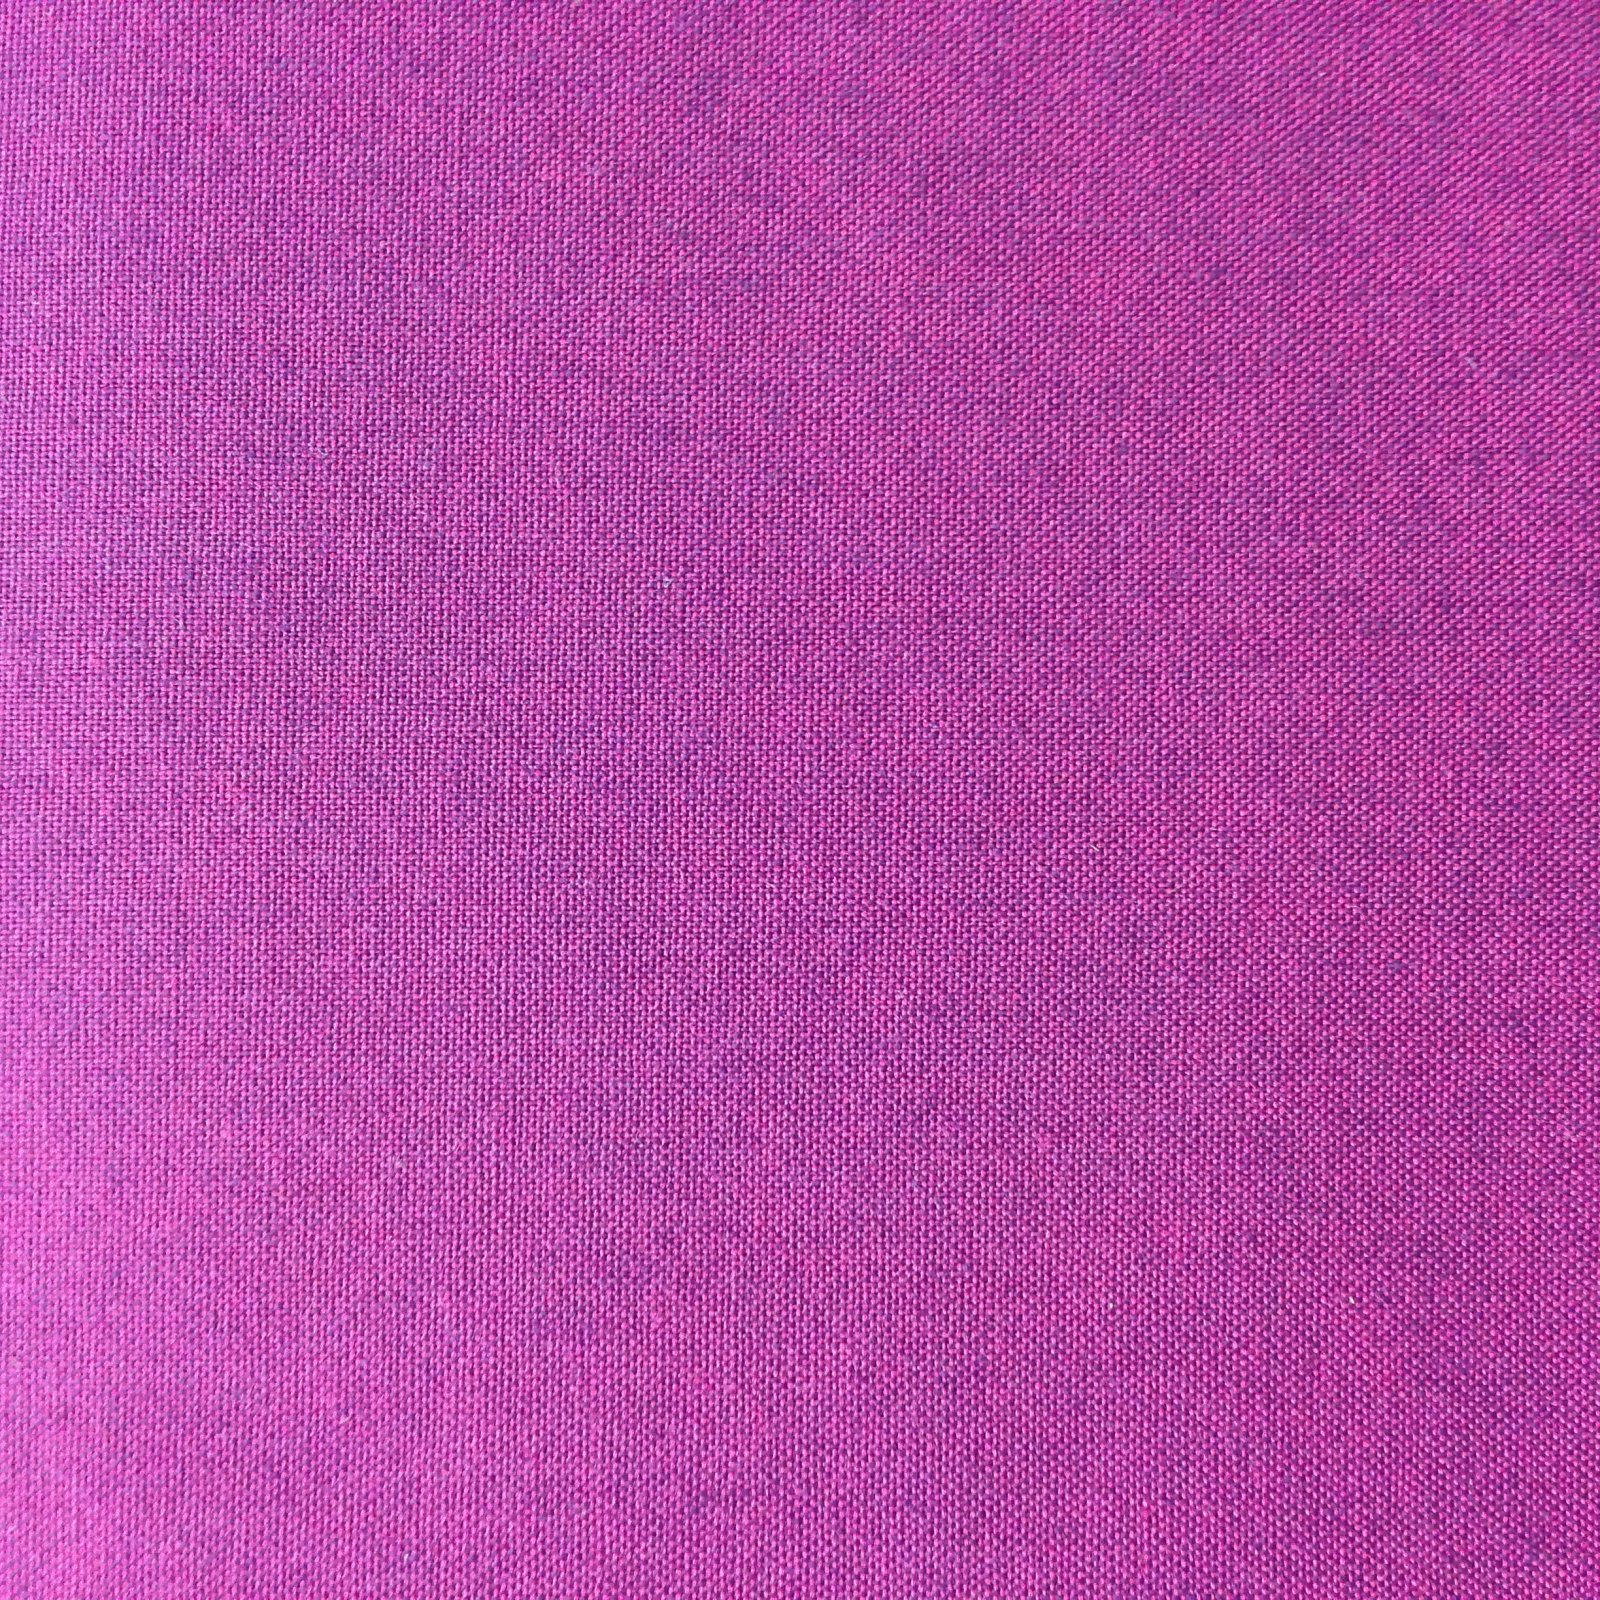 Kokka - Lightweight Canvas - Plum